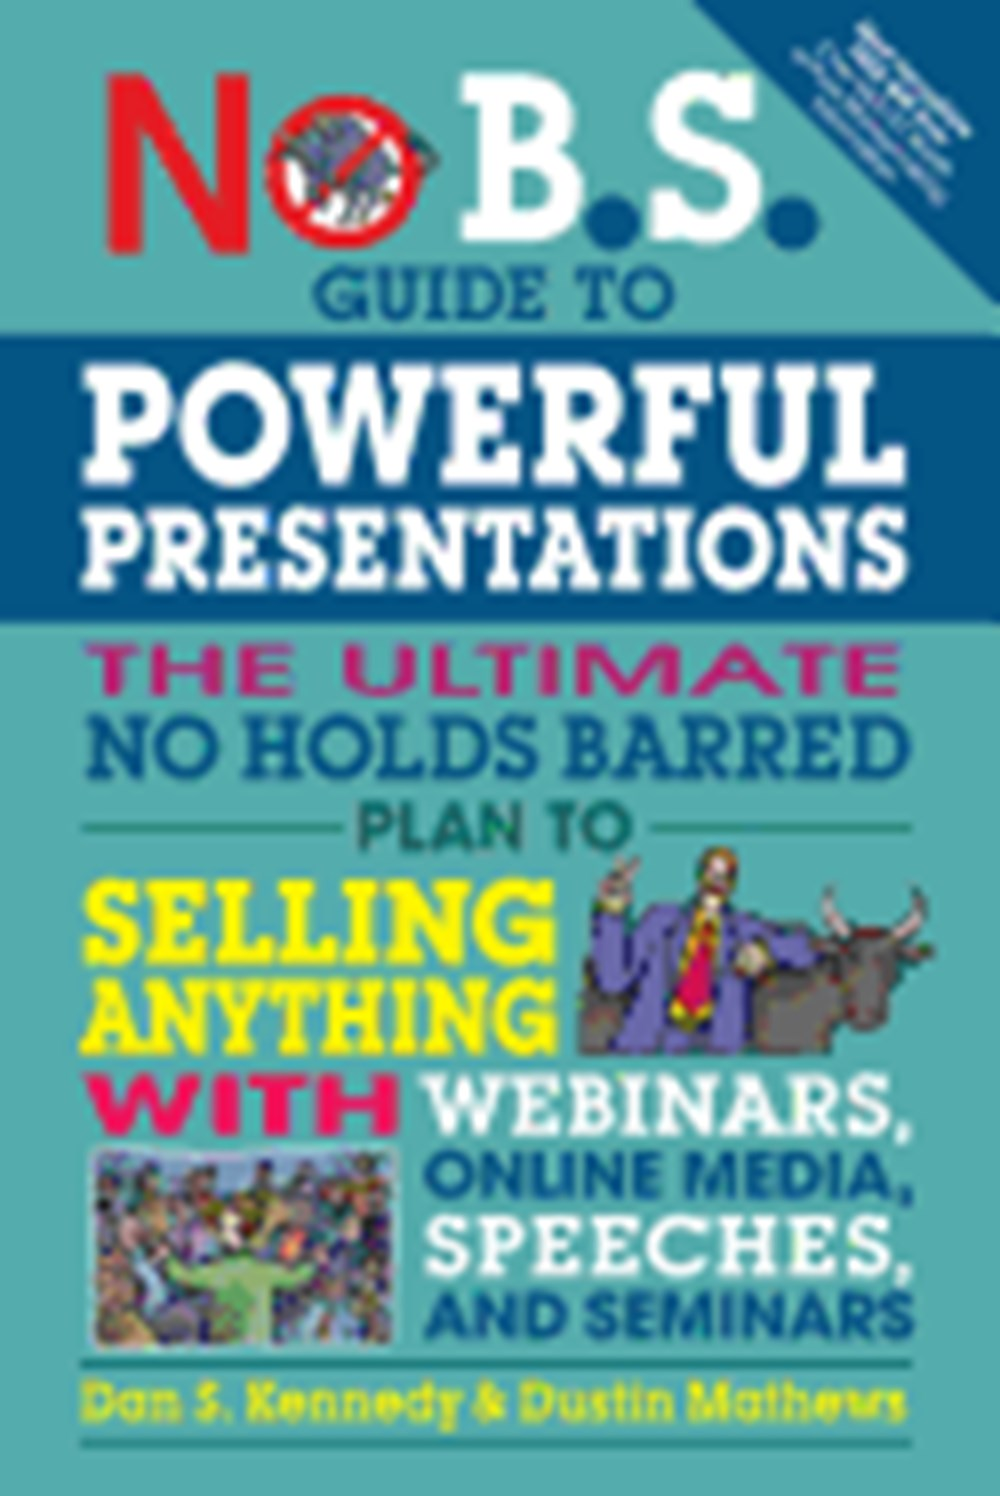 No B.S. Guide to Powerful Presentations The Ultimate No Holds Barred Plan to Sell Anything with Webi